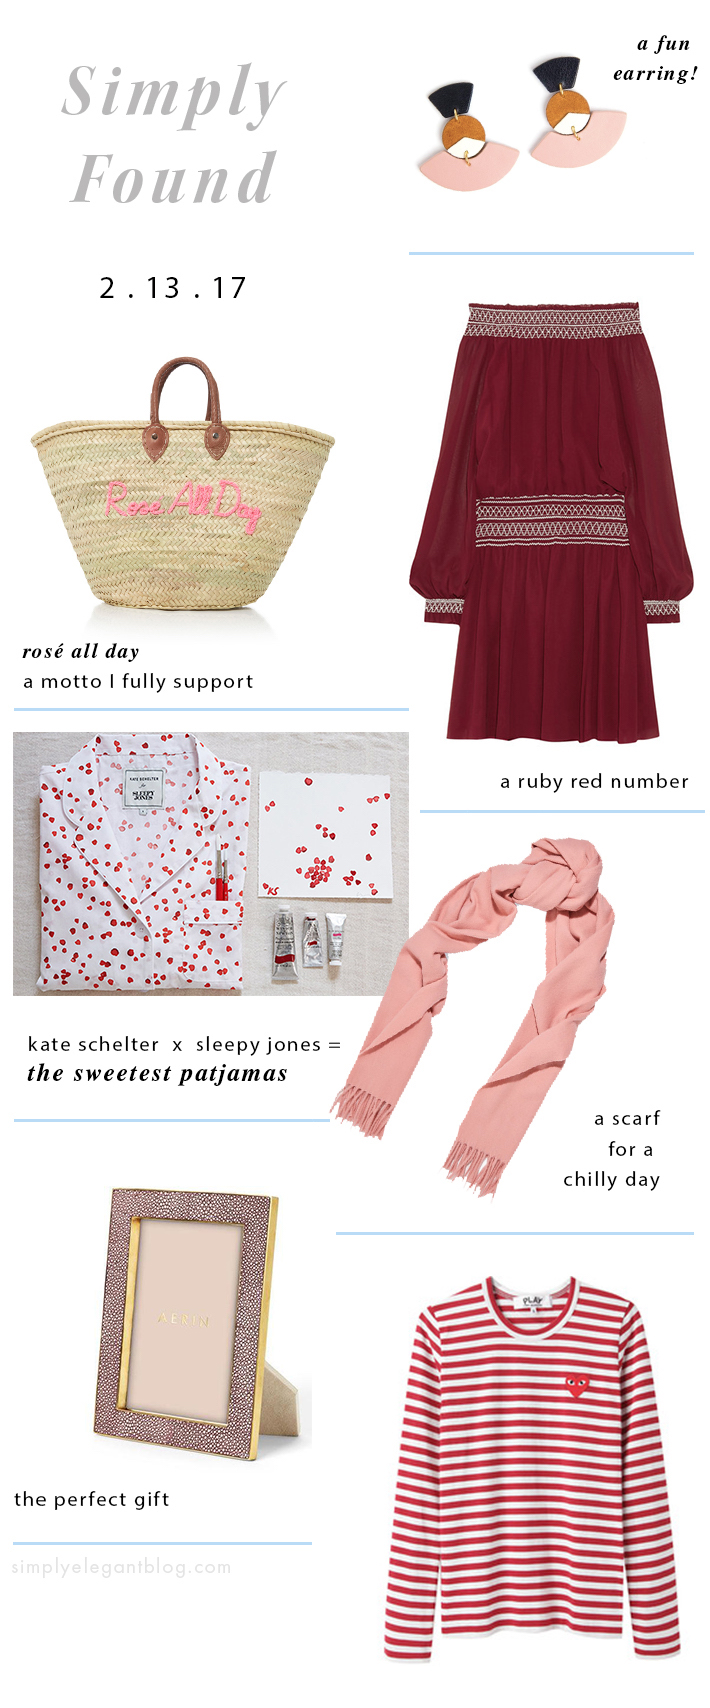 Favorite Pink & Red Items - Simply Found - Valentine's Day Shopping